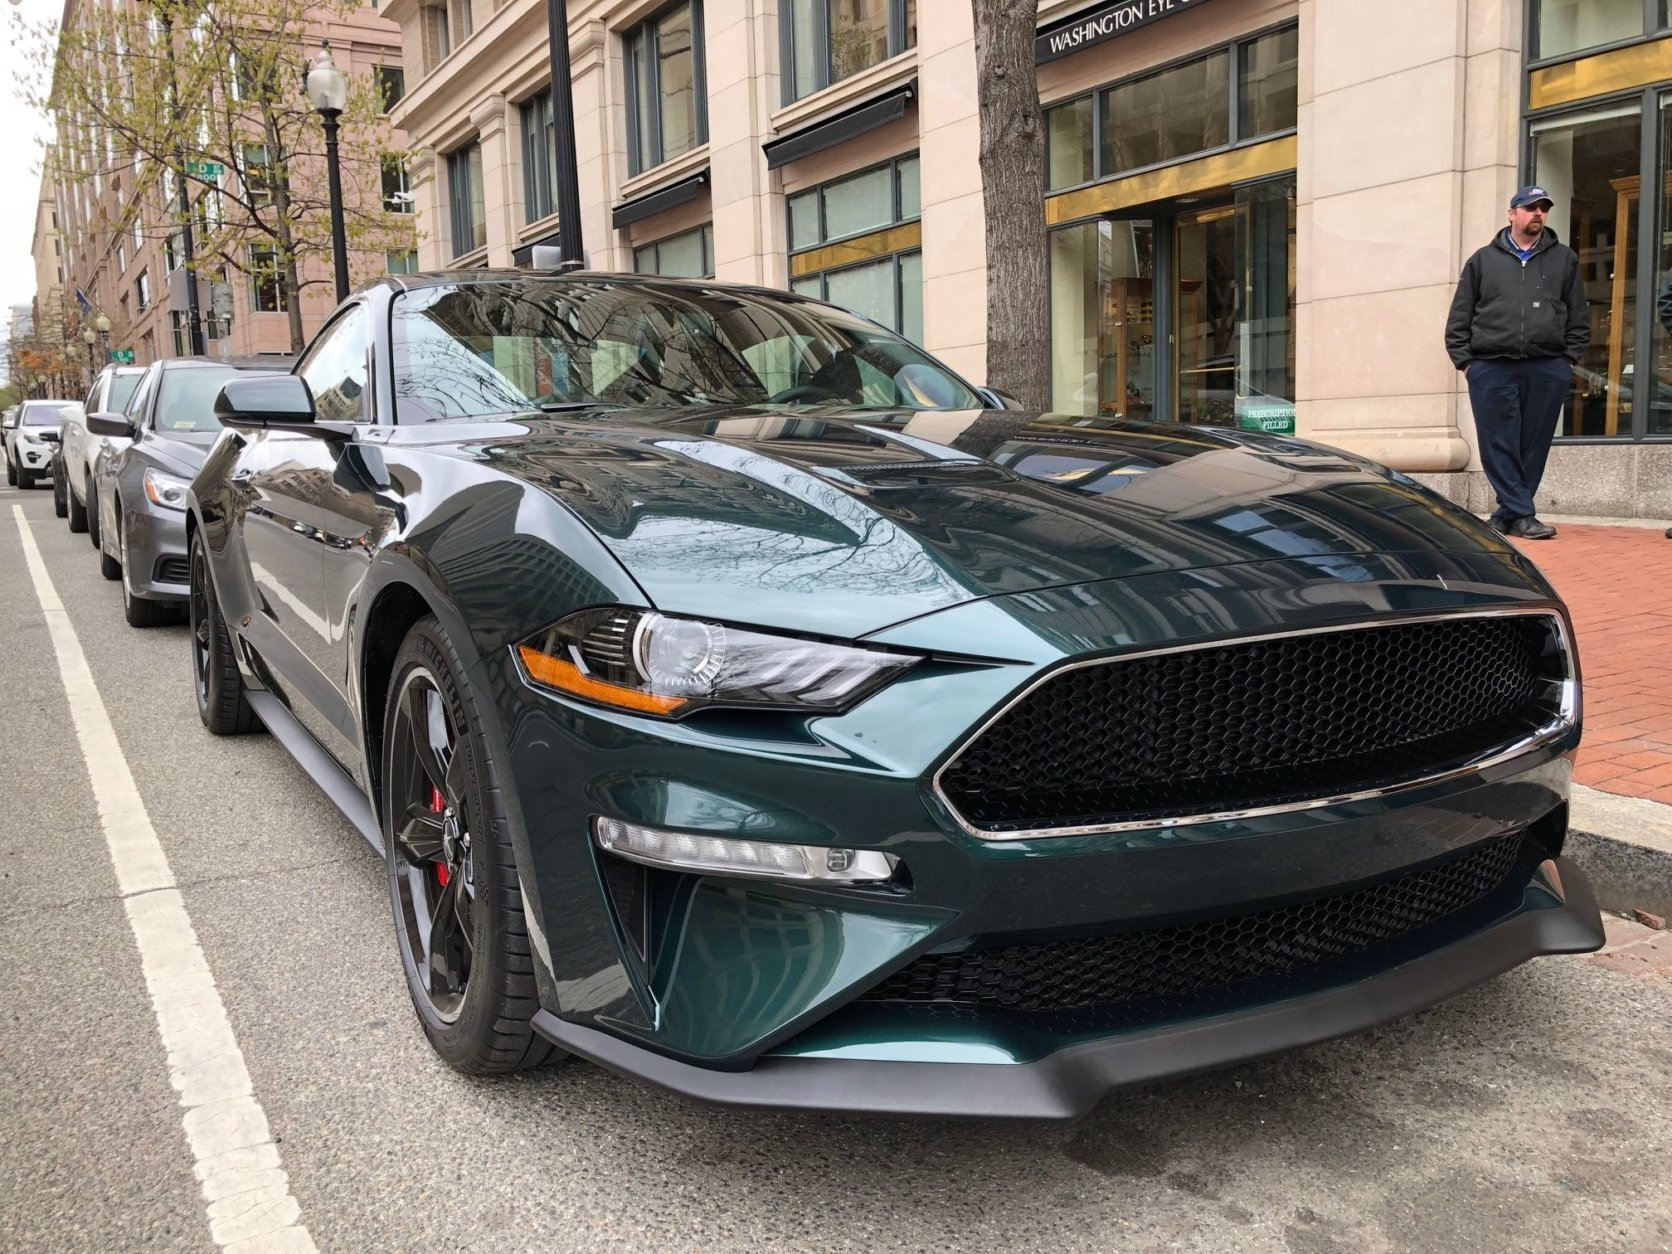 Pictured is the 2019 Mustang Bullitt, the latest commemorative edition Mustang based on the movie car. (WTOP/John Aaron)